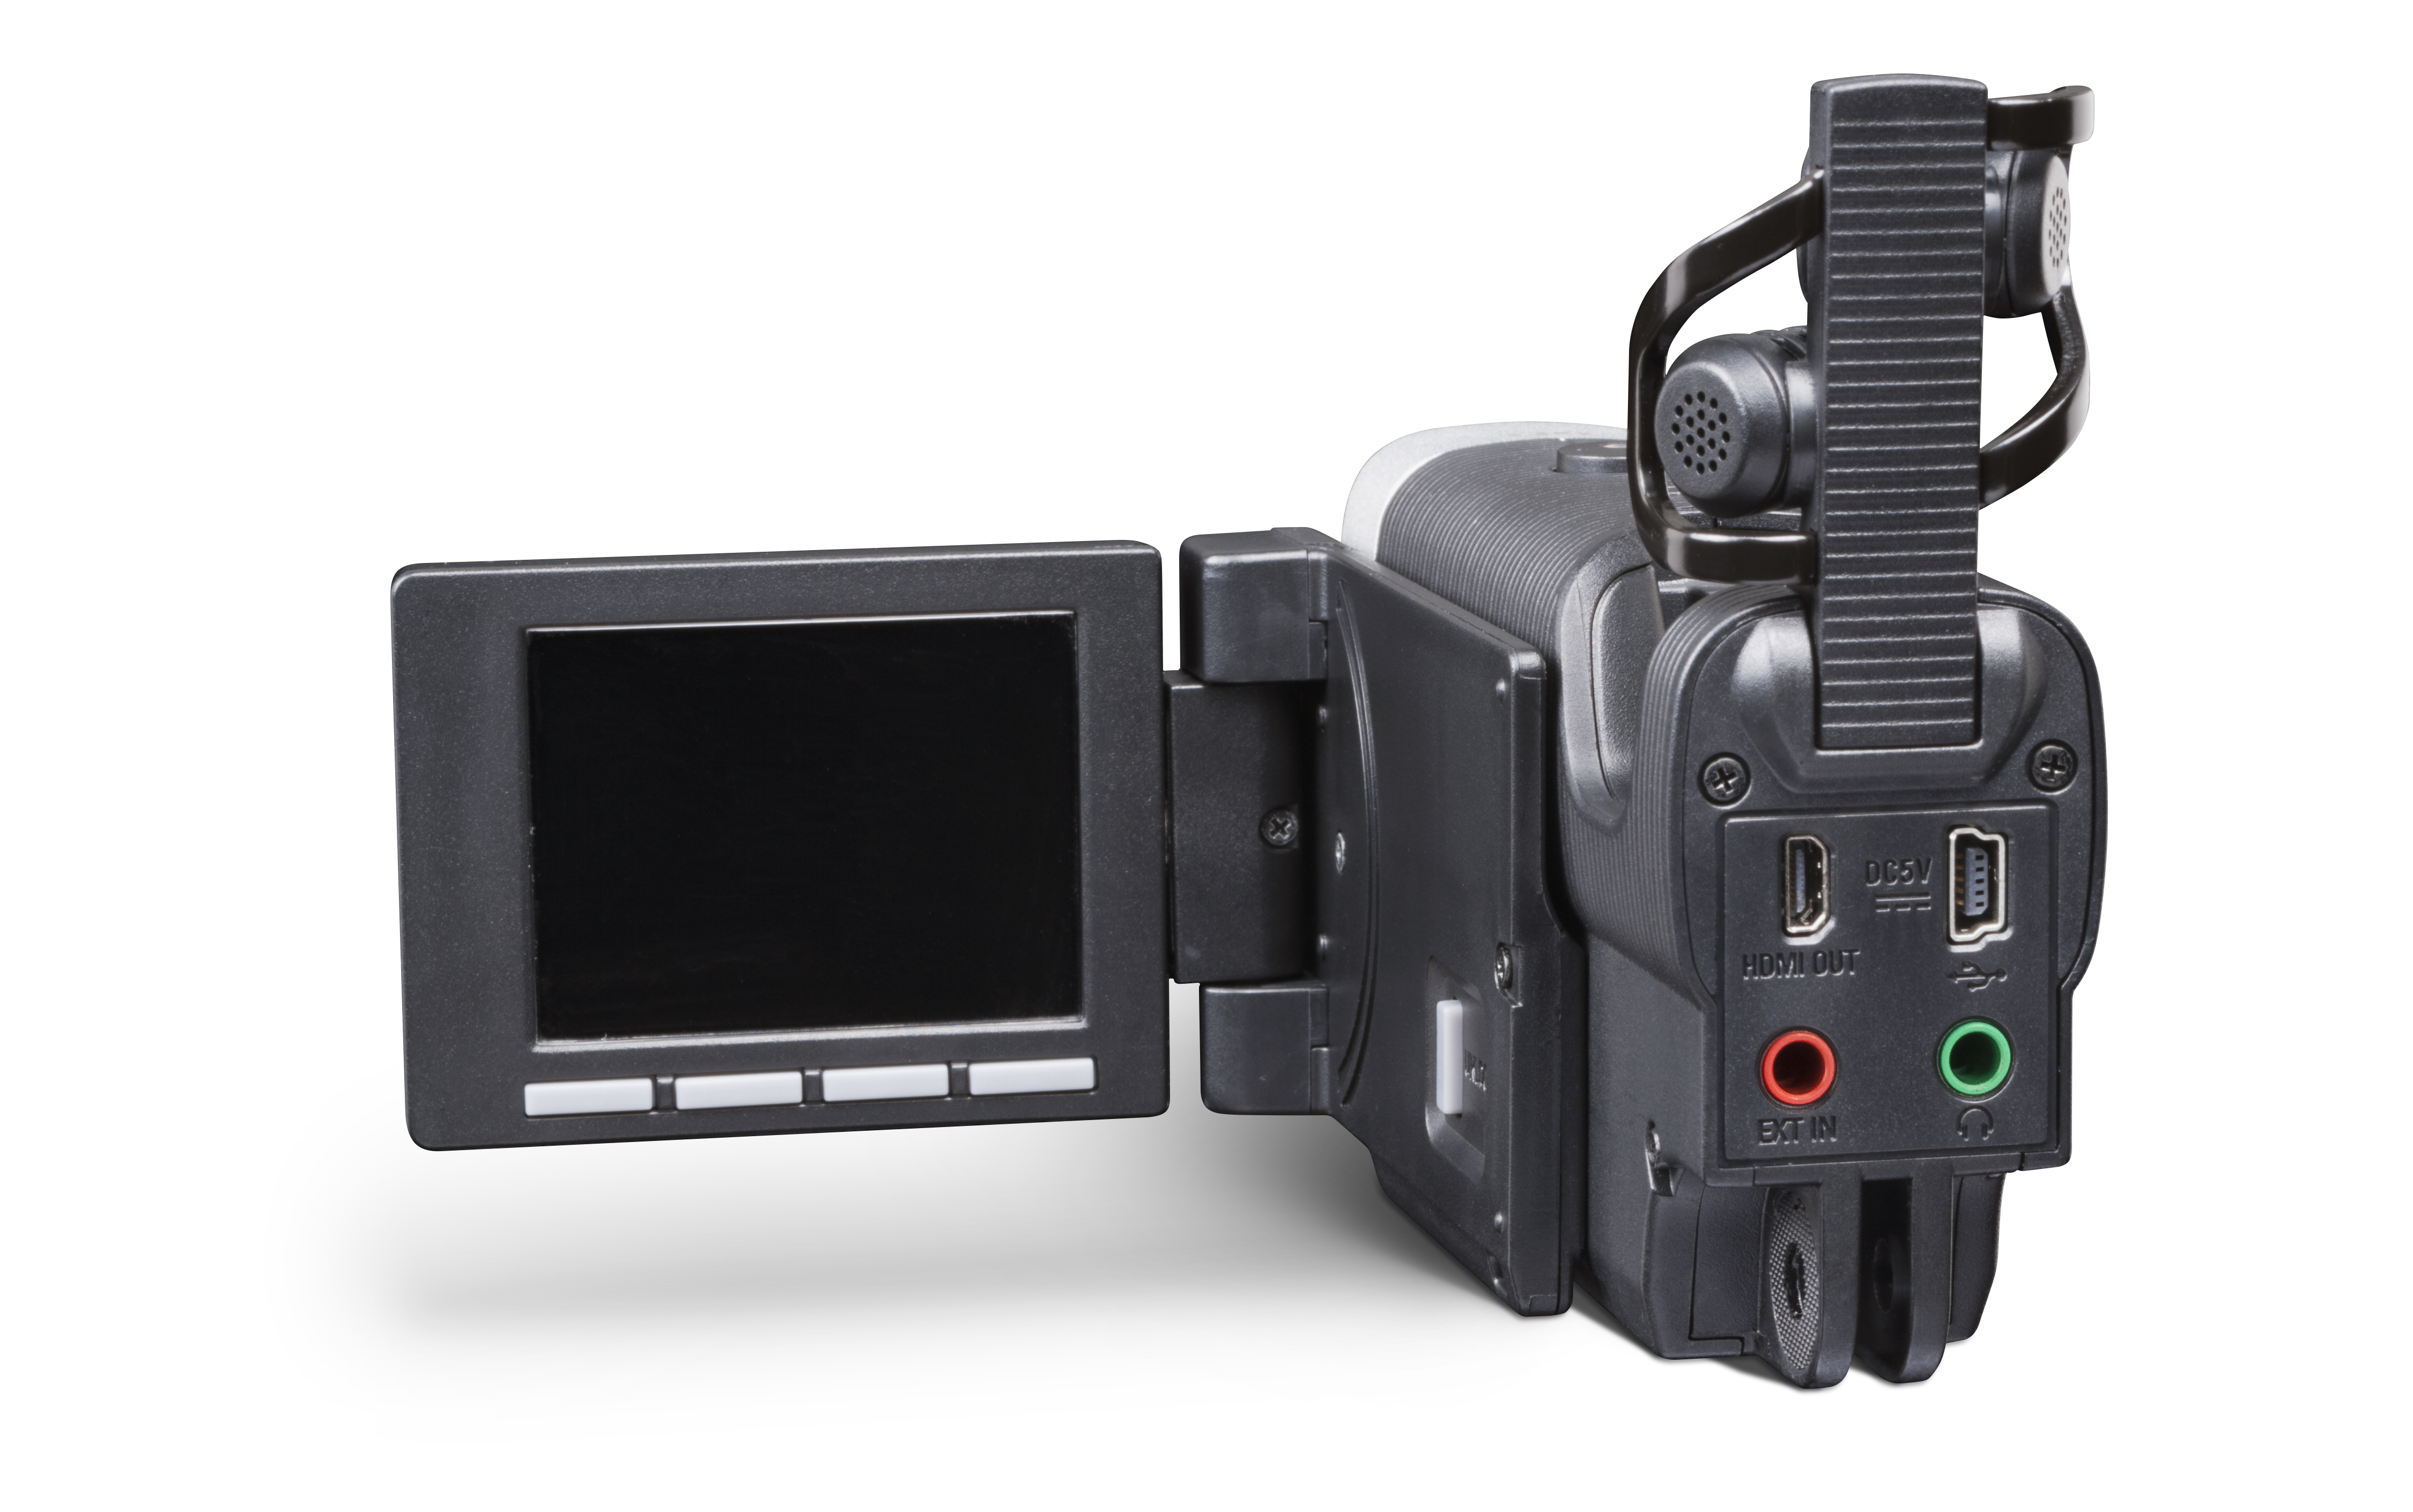 q2hd handy video recorder manual